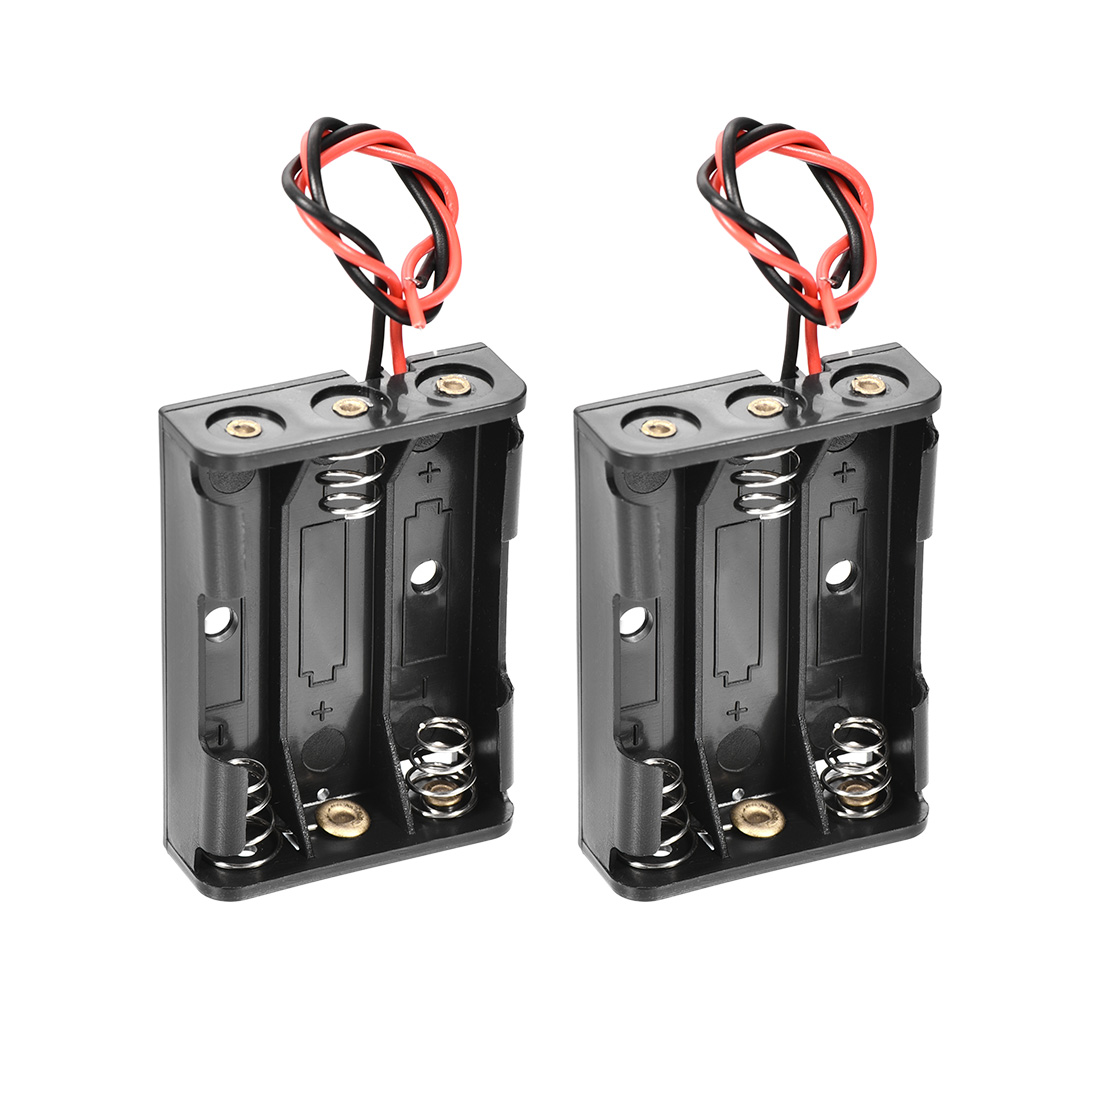 3 x 1.5V AAA Battery Spring Clip Holder Storage Case Box Wire Leads 2Pcs